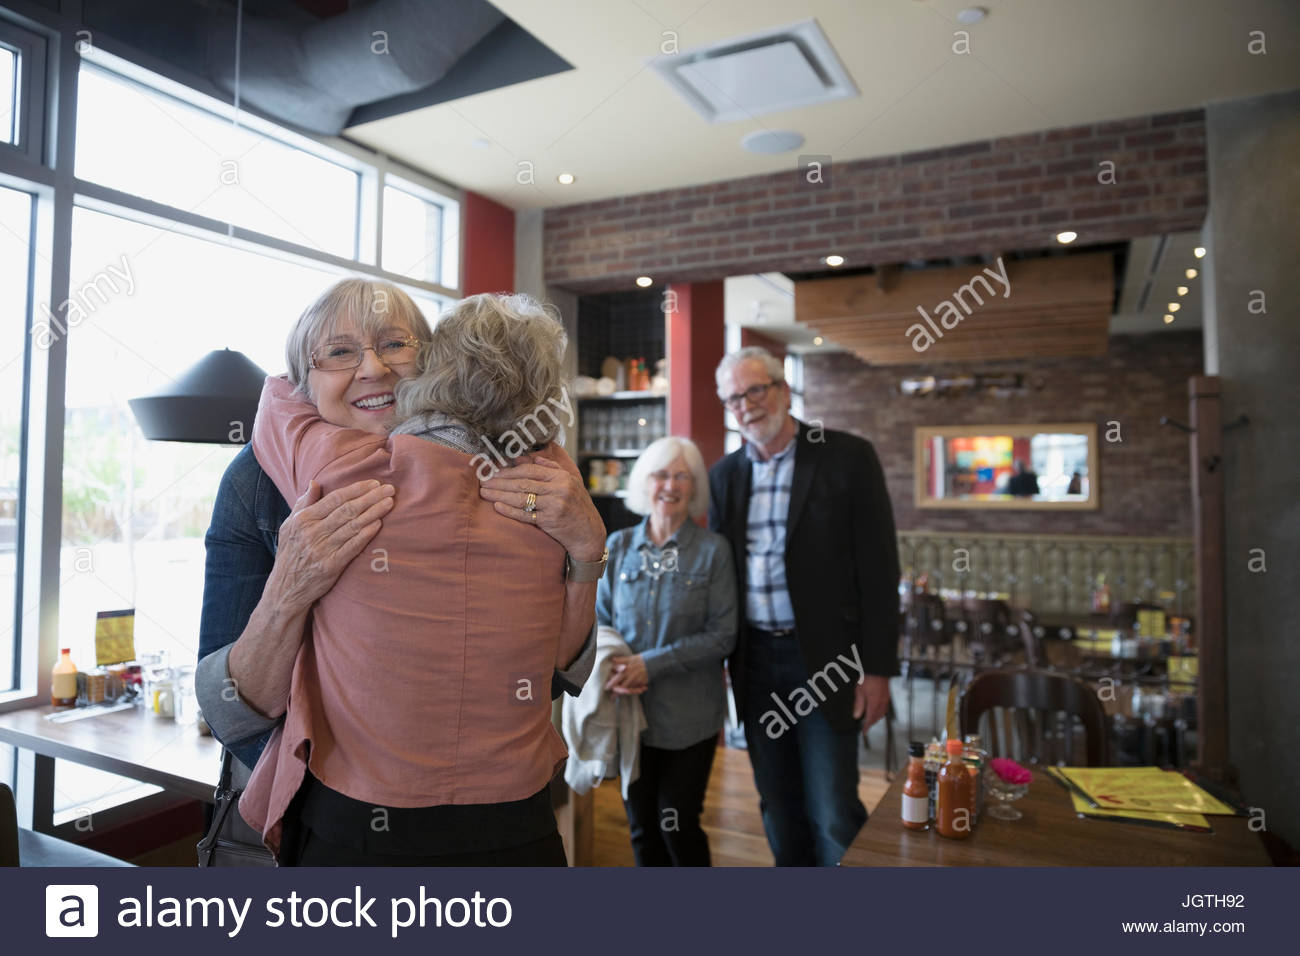 Senior friends greeting, hugging in diner - Stock Image